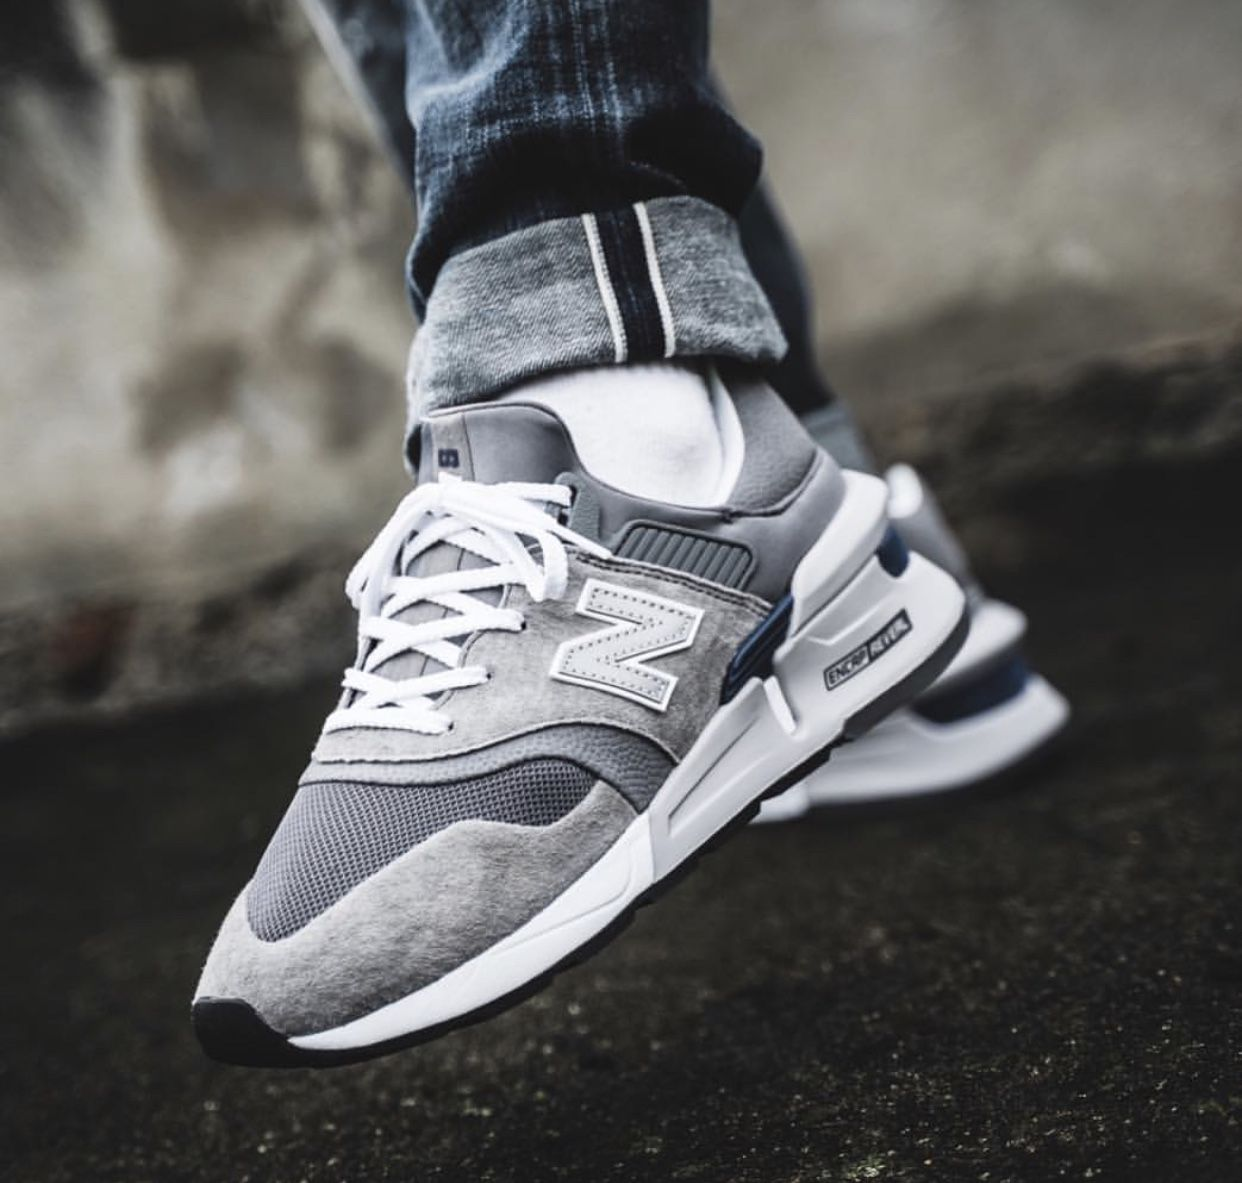 New Balance 997 Sneakers, New balance, Nike shoes outlet